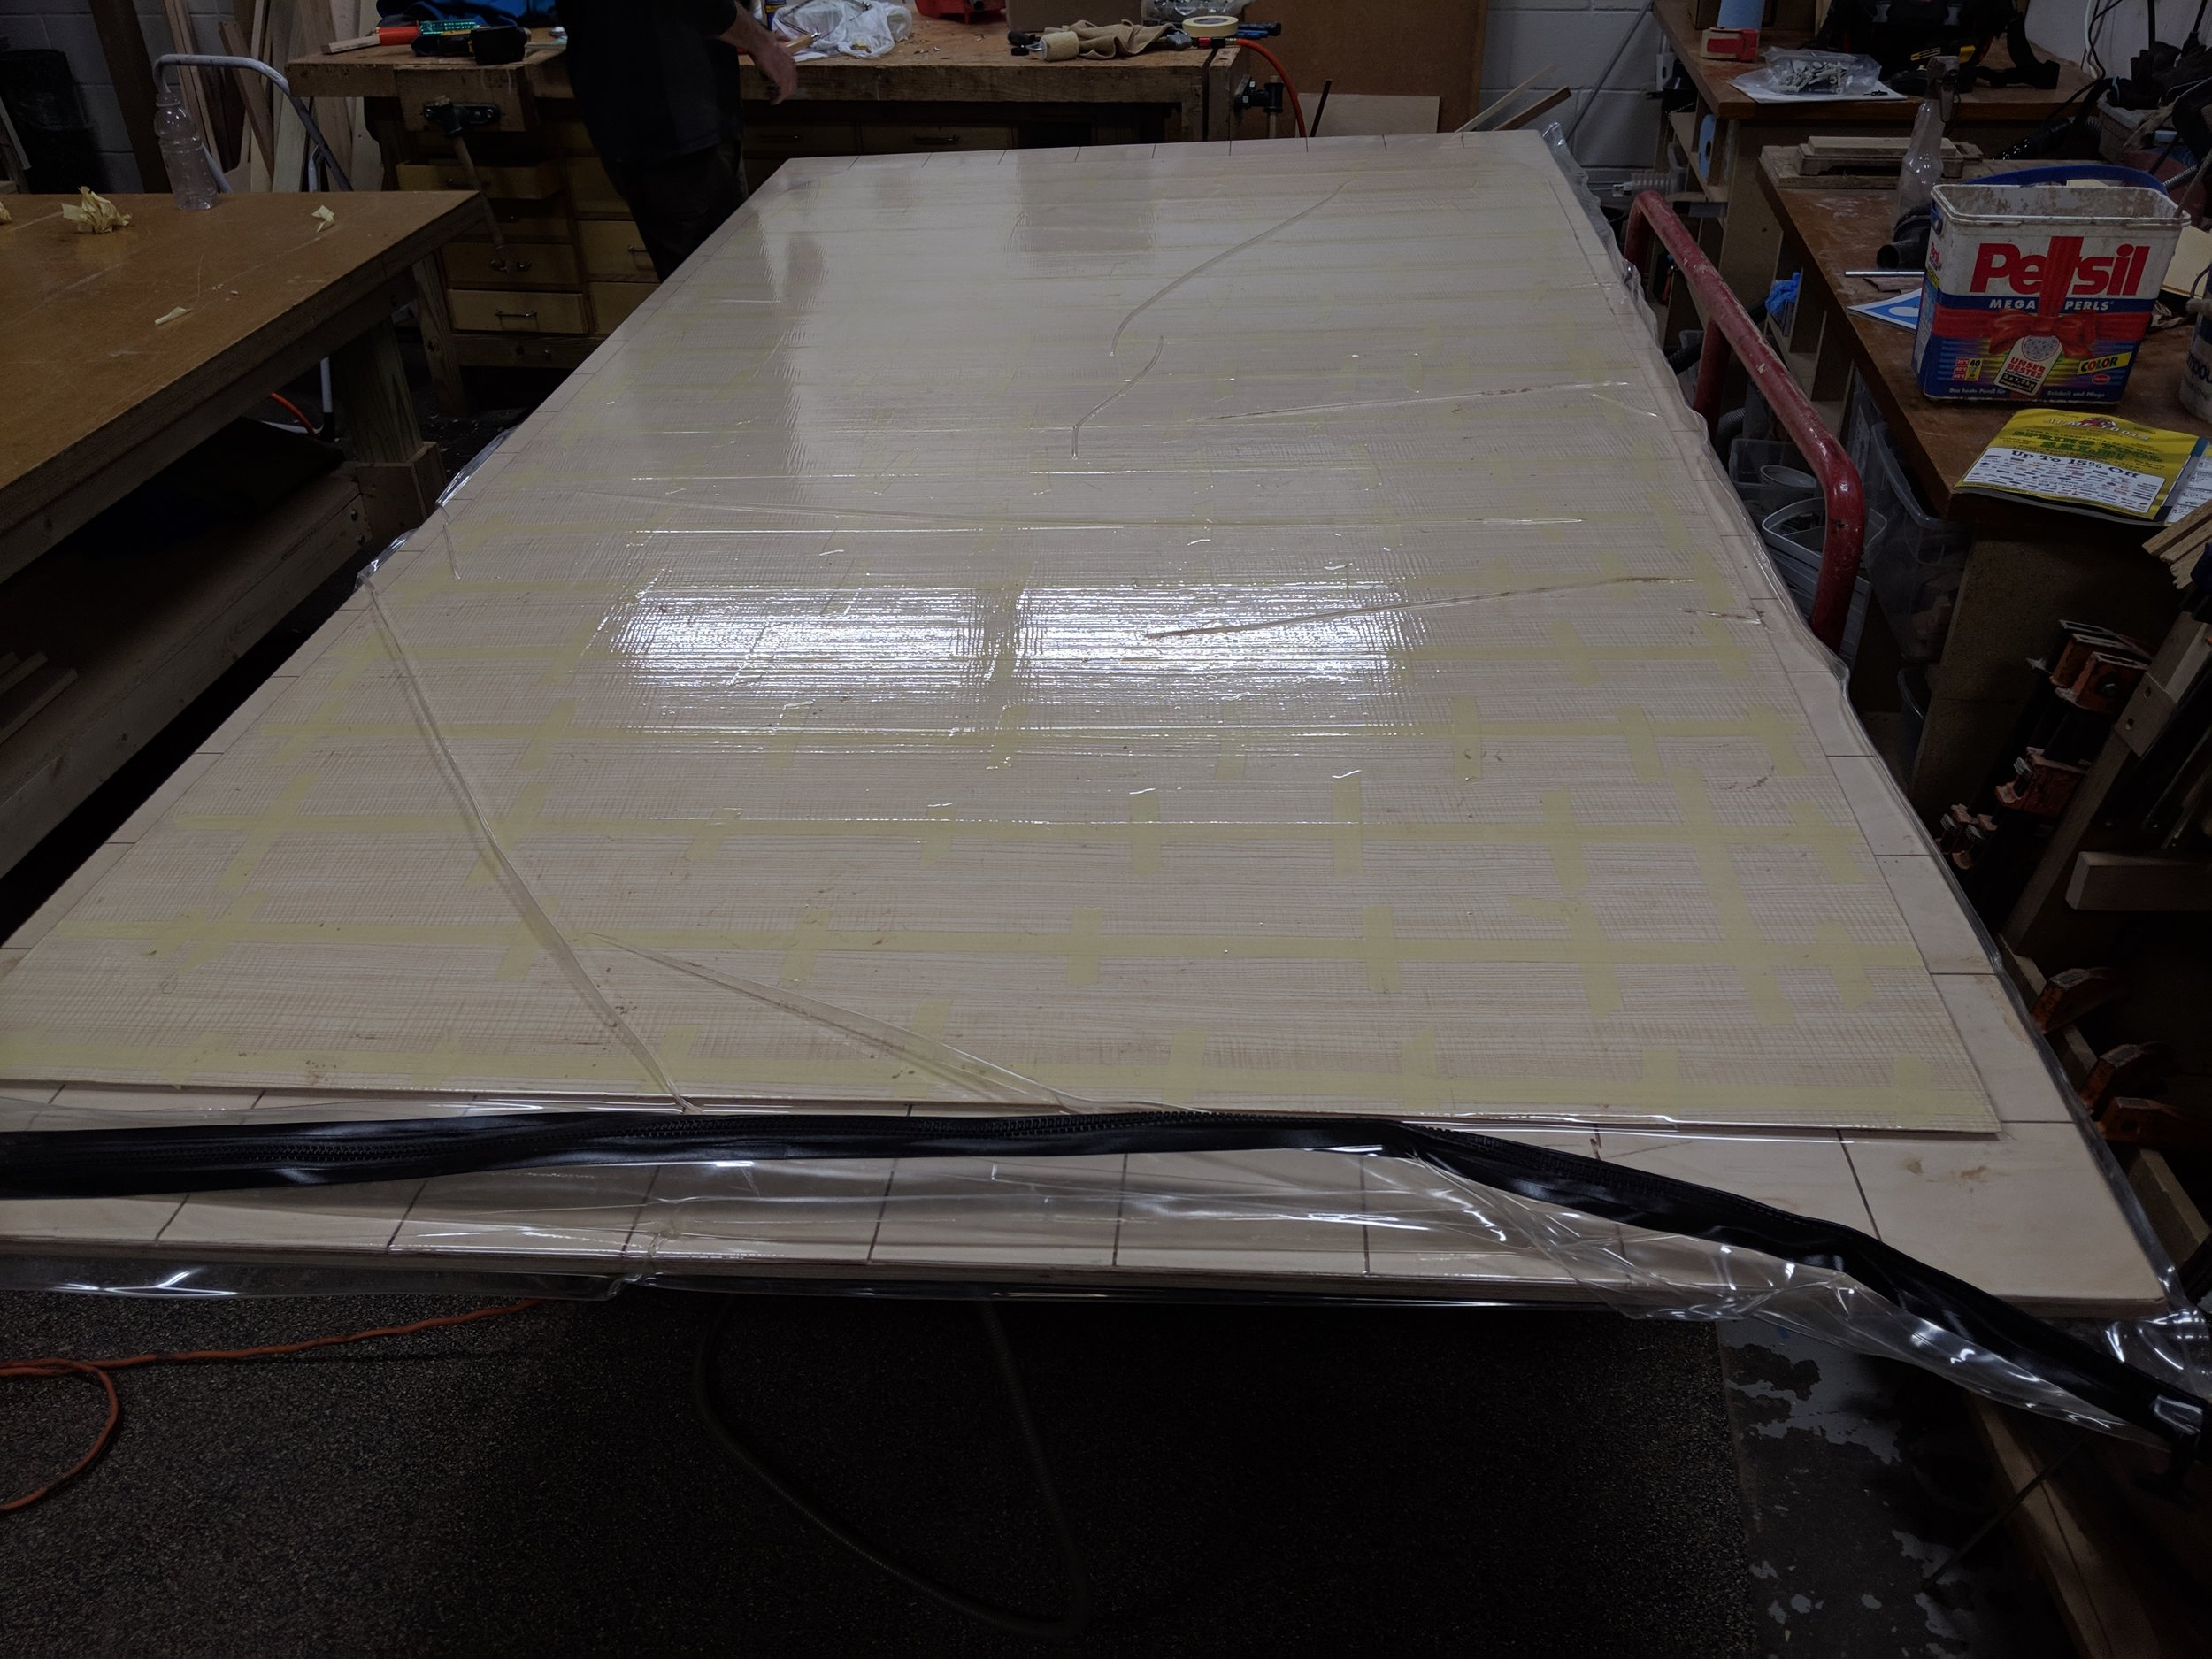 Finished panel in vacuum press